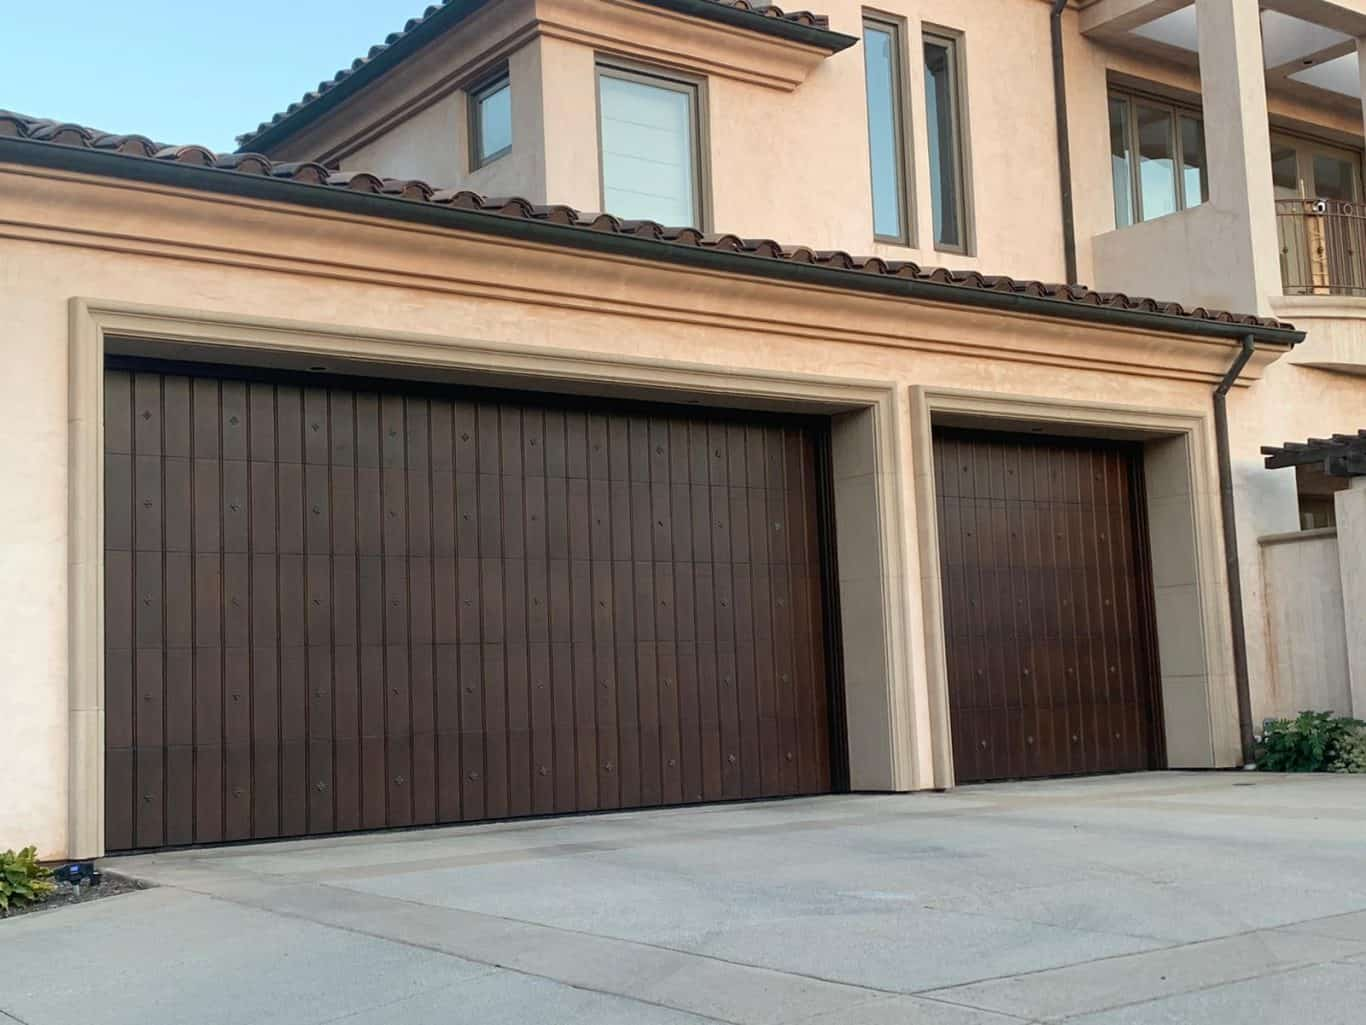 Garage Door Safety Tips: 8 Things You Need to Know